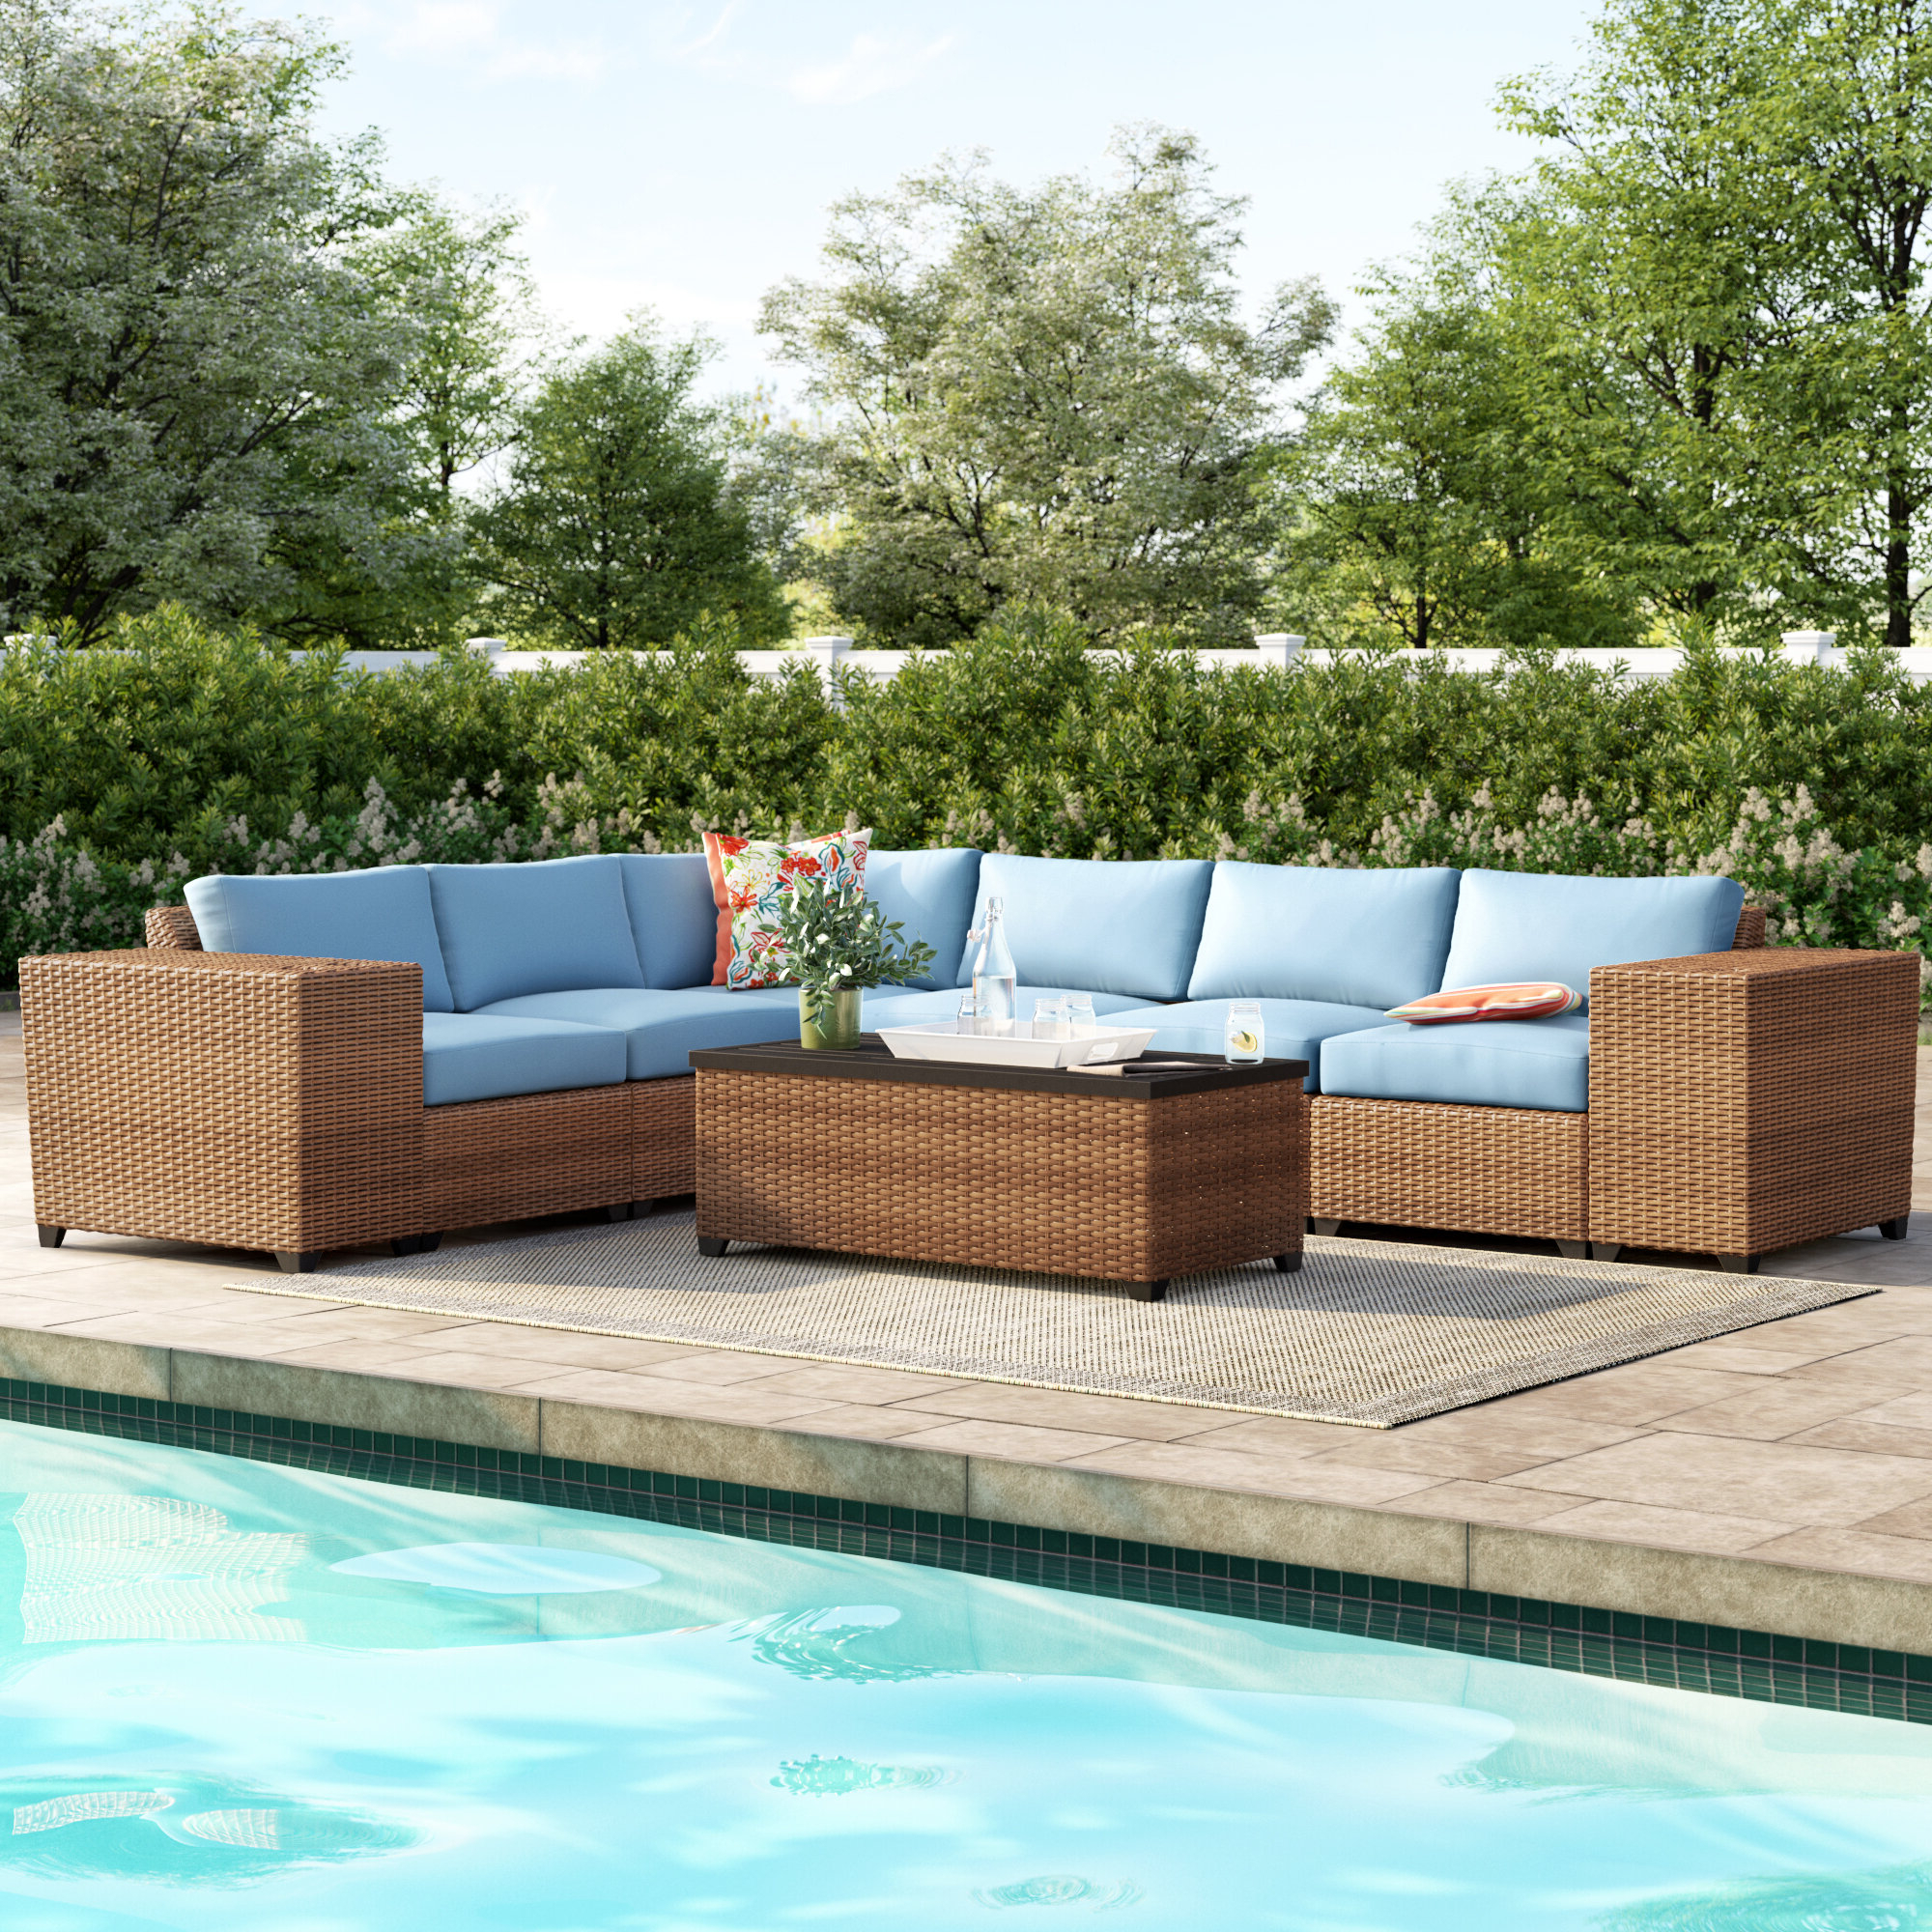 Waterbury 9 Piece Sectional Seating Group With Cushions Pertaining To Fashionable Waterbury Patio Sectionals With Cushions (View 17 of 25)